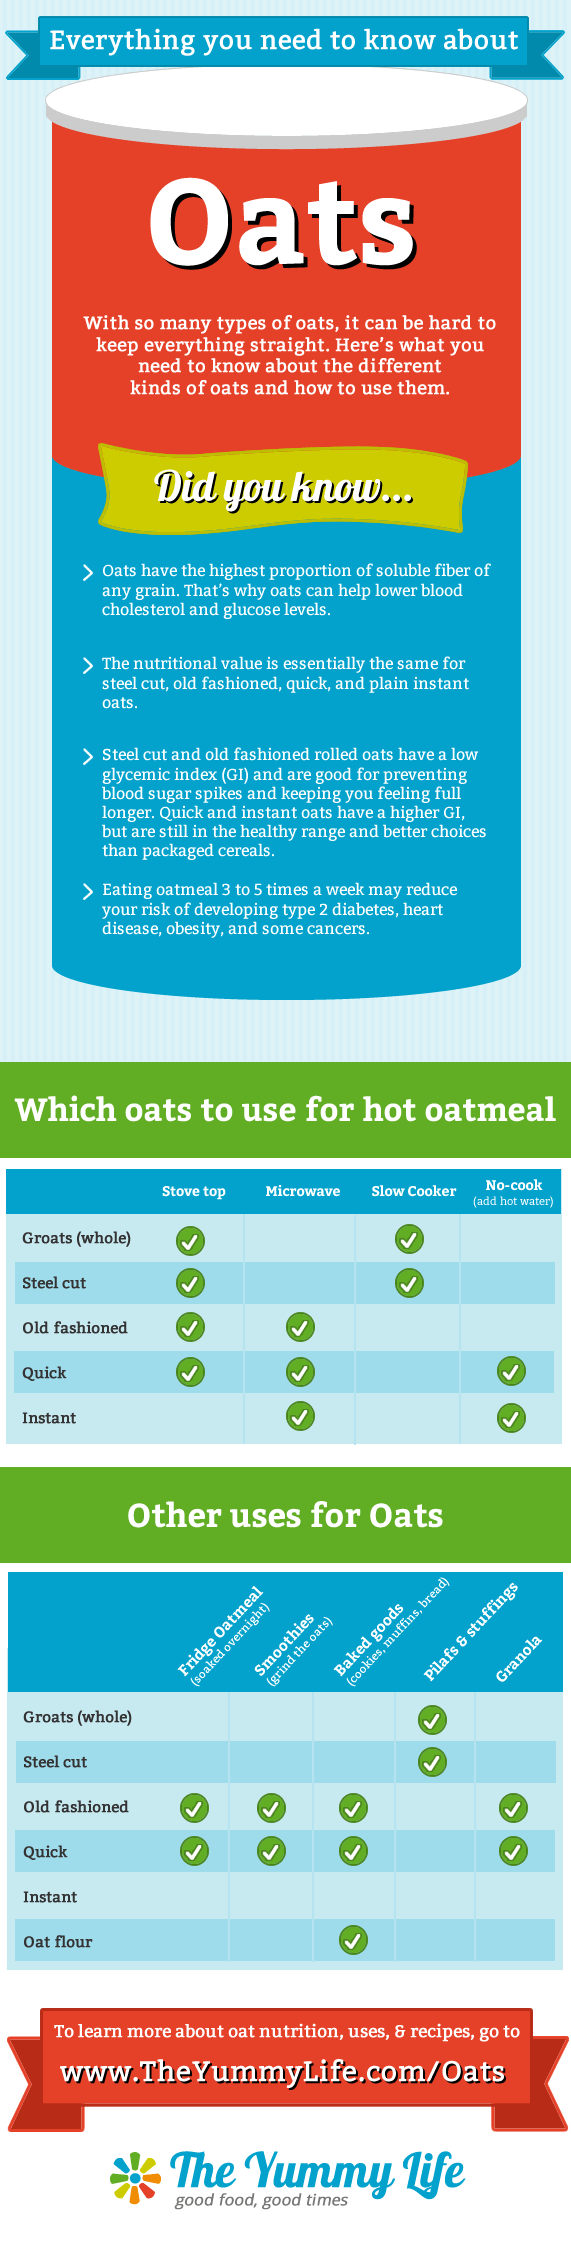 Everything you need to know about oats.